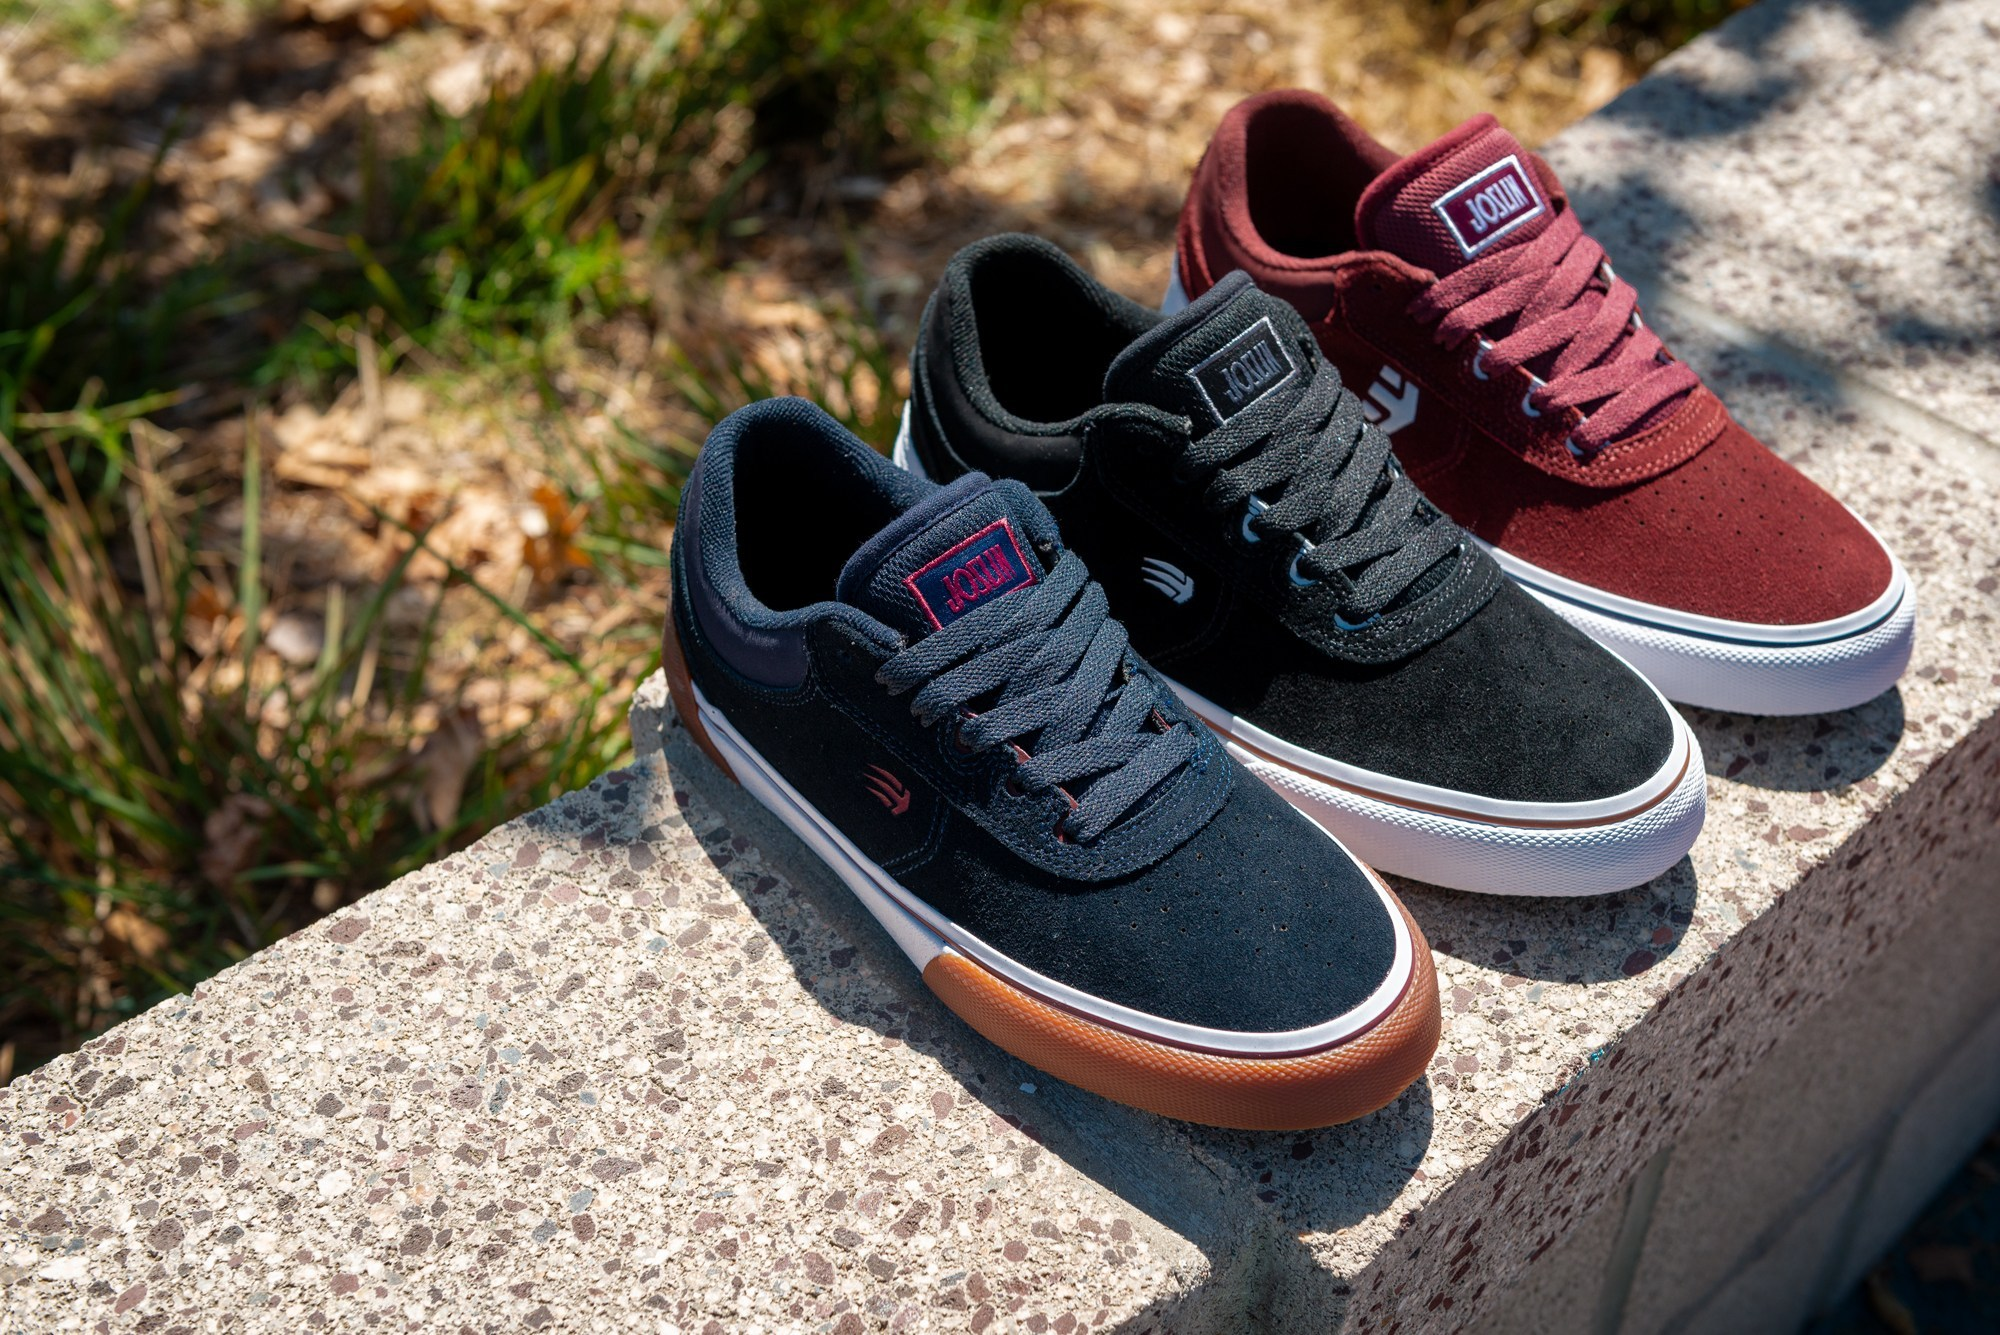 ETNIES: Footwear & apparel built by skateboarders to withstand the toughest conditions of skateboarding.